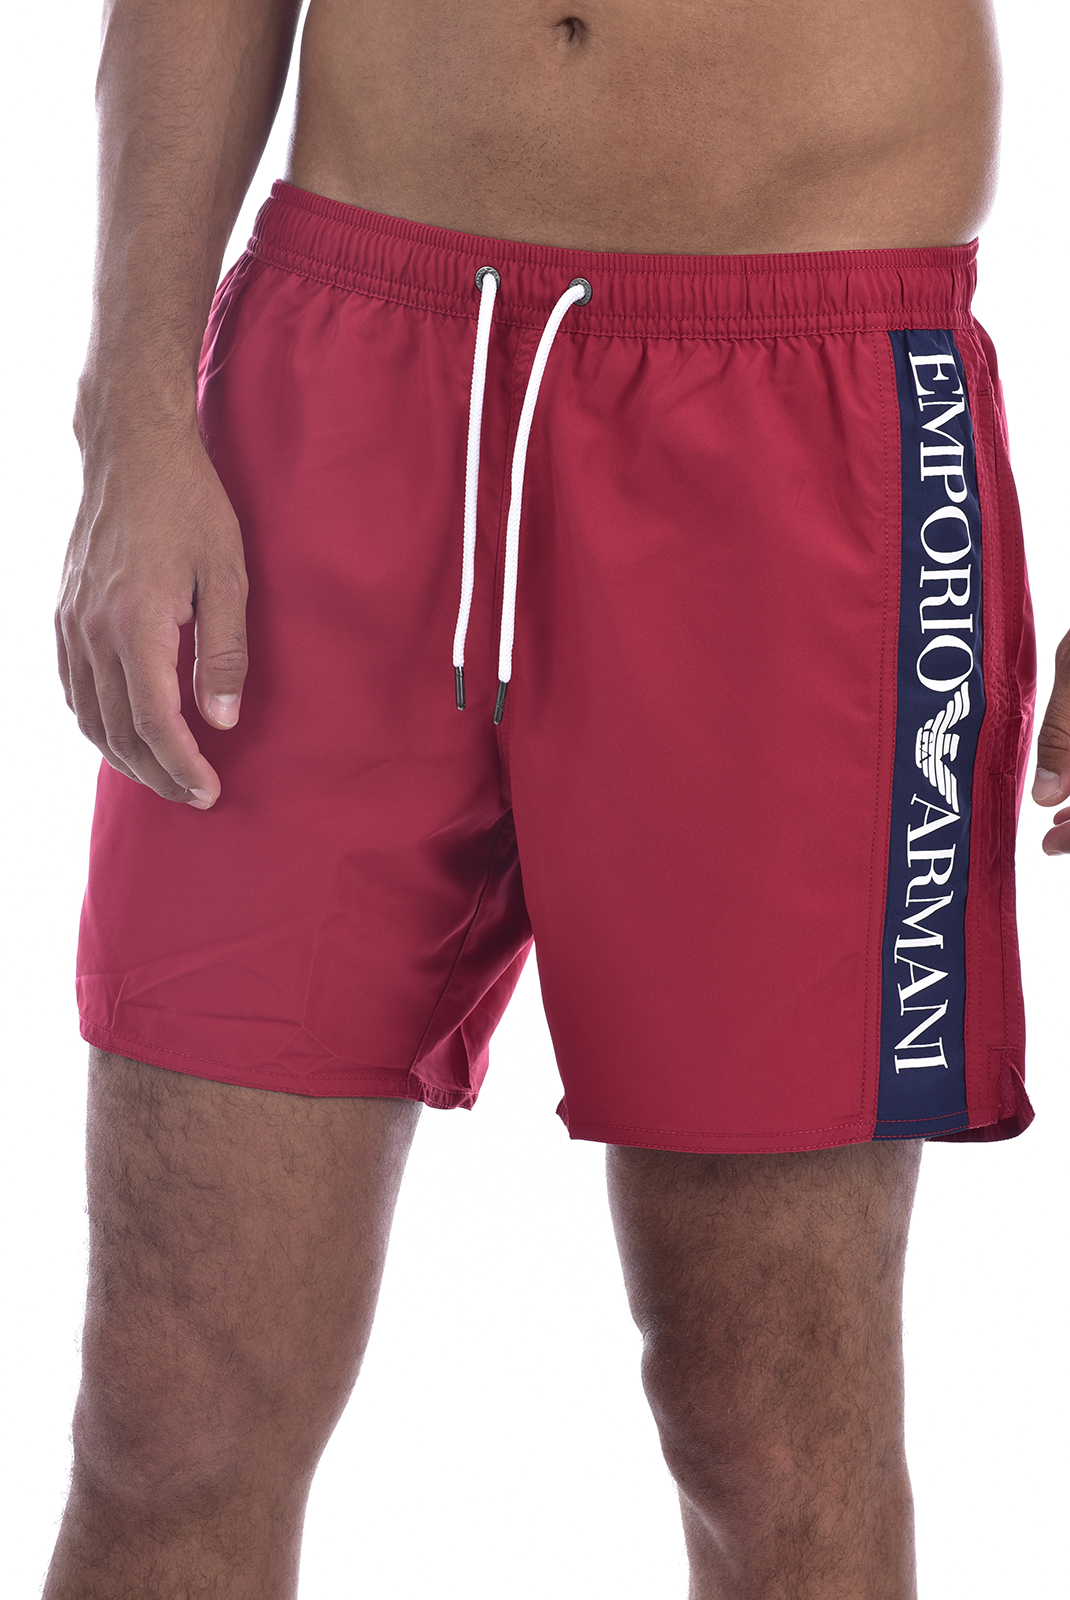 Shorts de bain  Emporio armani 211740 0P425 00173 RUBY RED